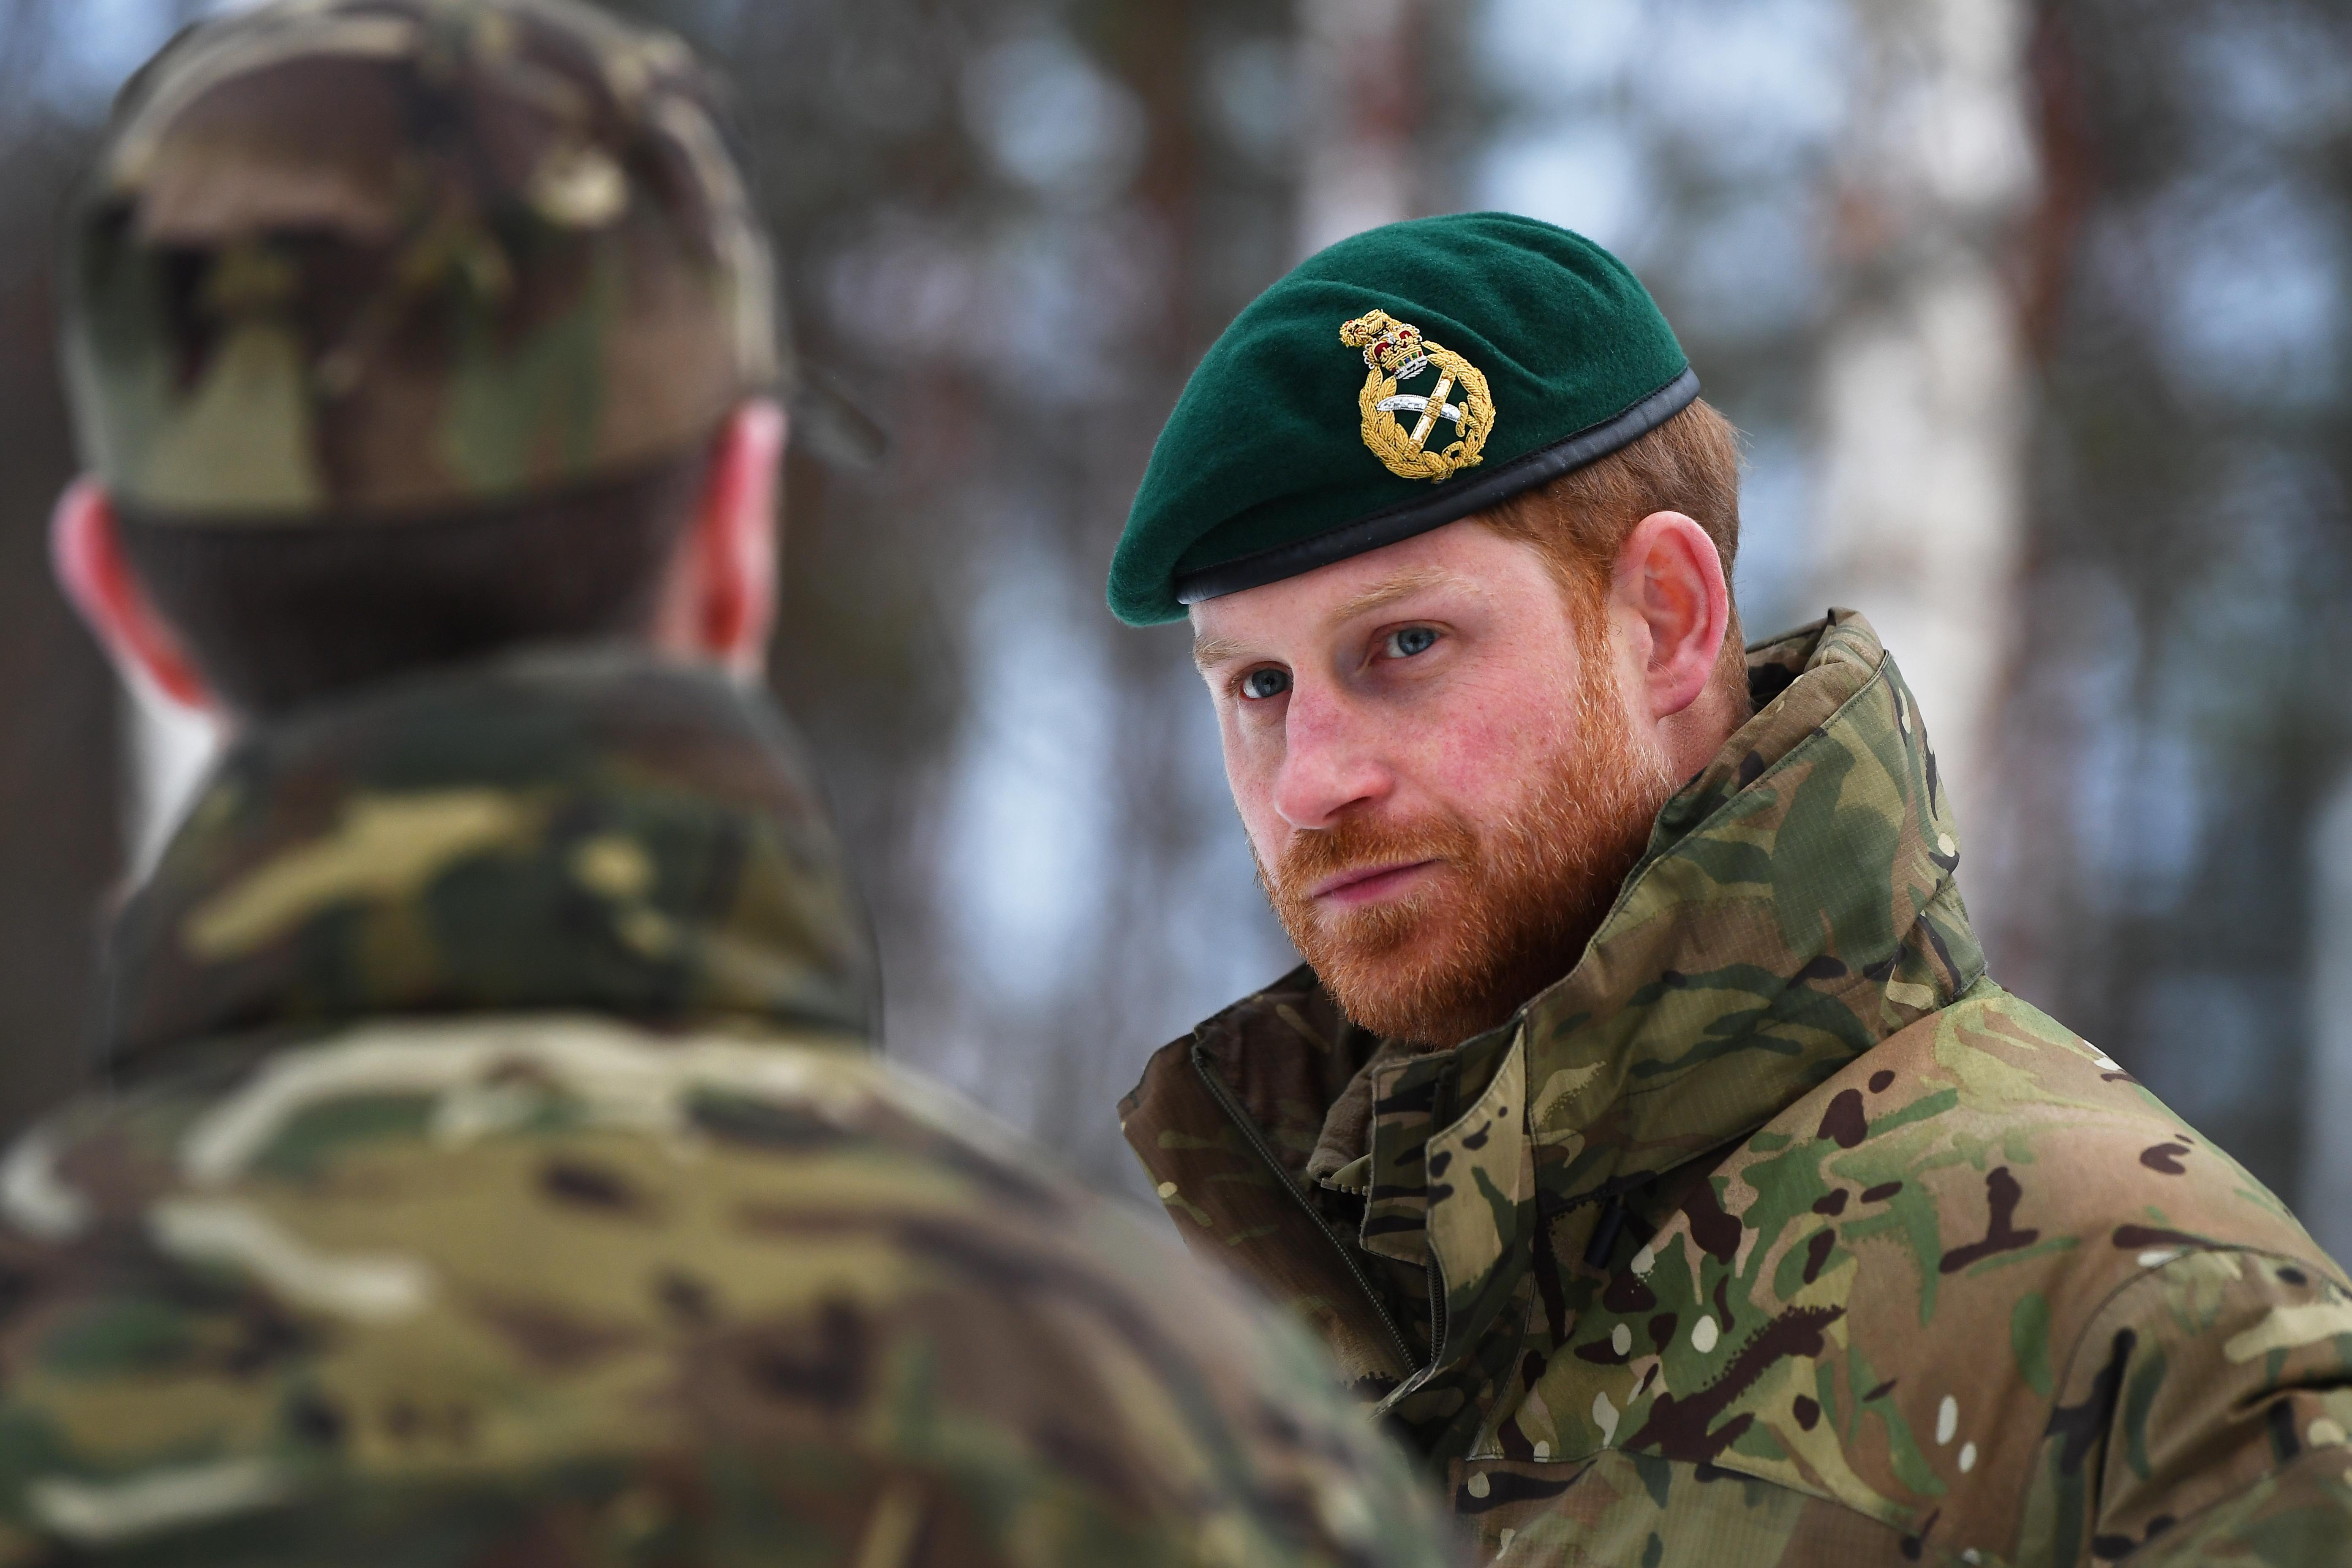 File photo dated 14/02/19 showing The Duke of Sussex during a visit to Exercise Clockwork in Bardufoss, Norway. The Duke of Sussex has spearheaded a new mental fitness tool aimed at helping the military with their wellbeing. Former soldier Harry appears in a video on HeadFIT.org, which has been designed to offer round the clock access to self help tools to enhance mood, drive and confidence.